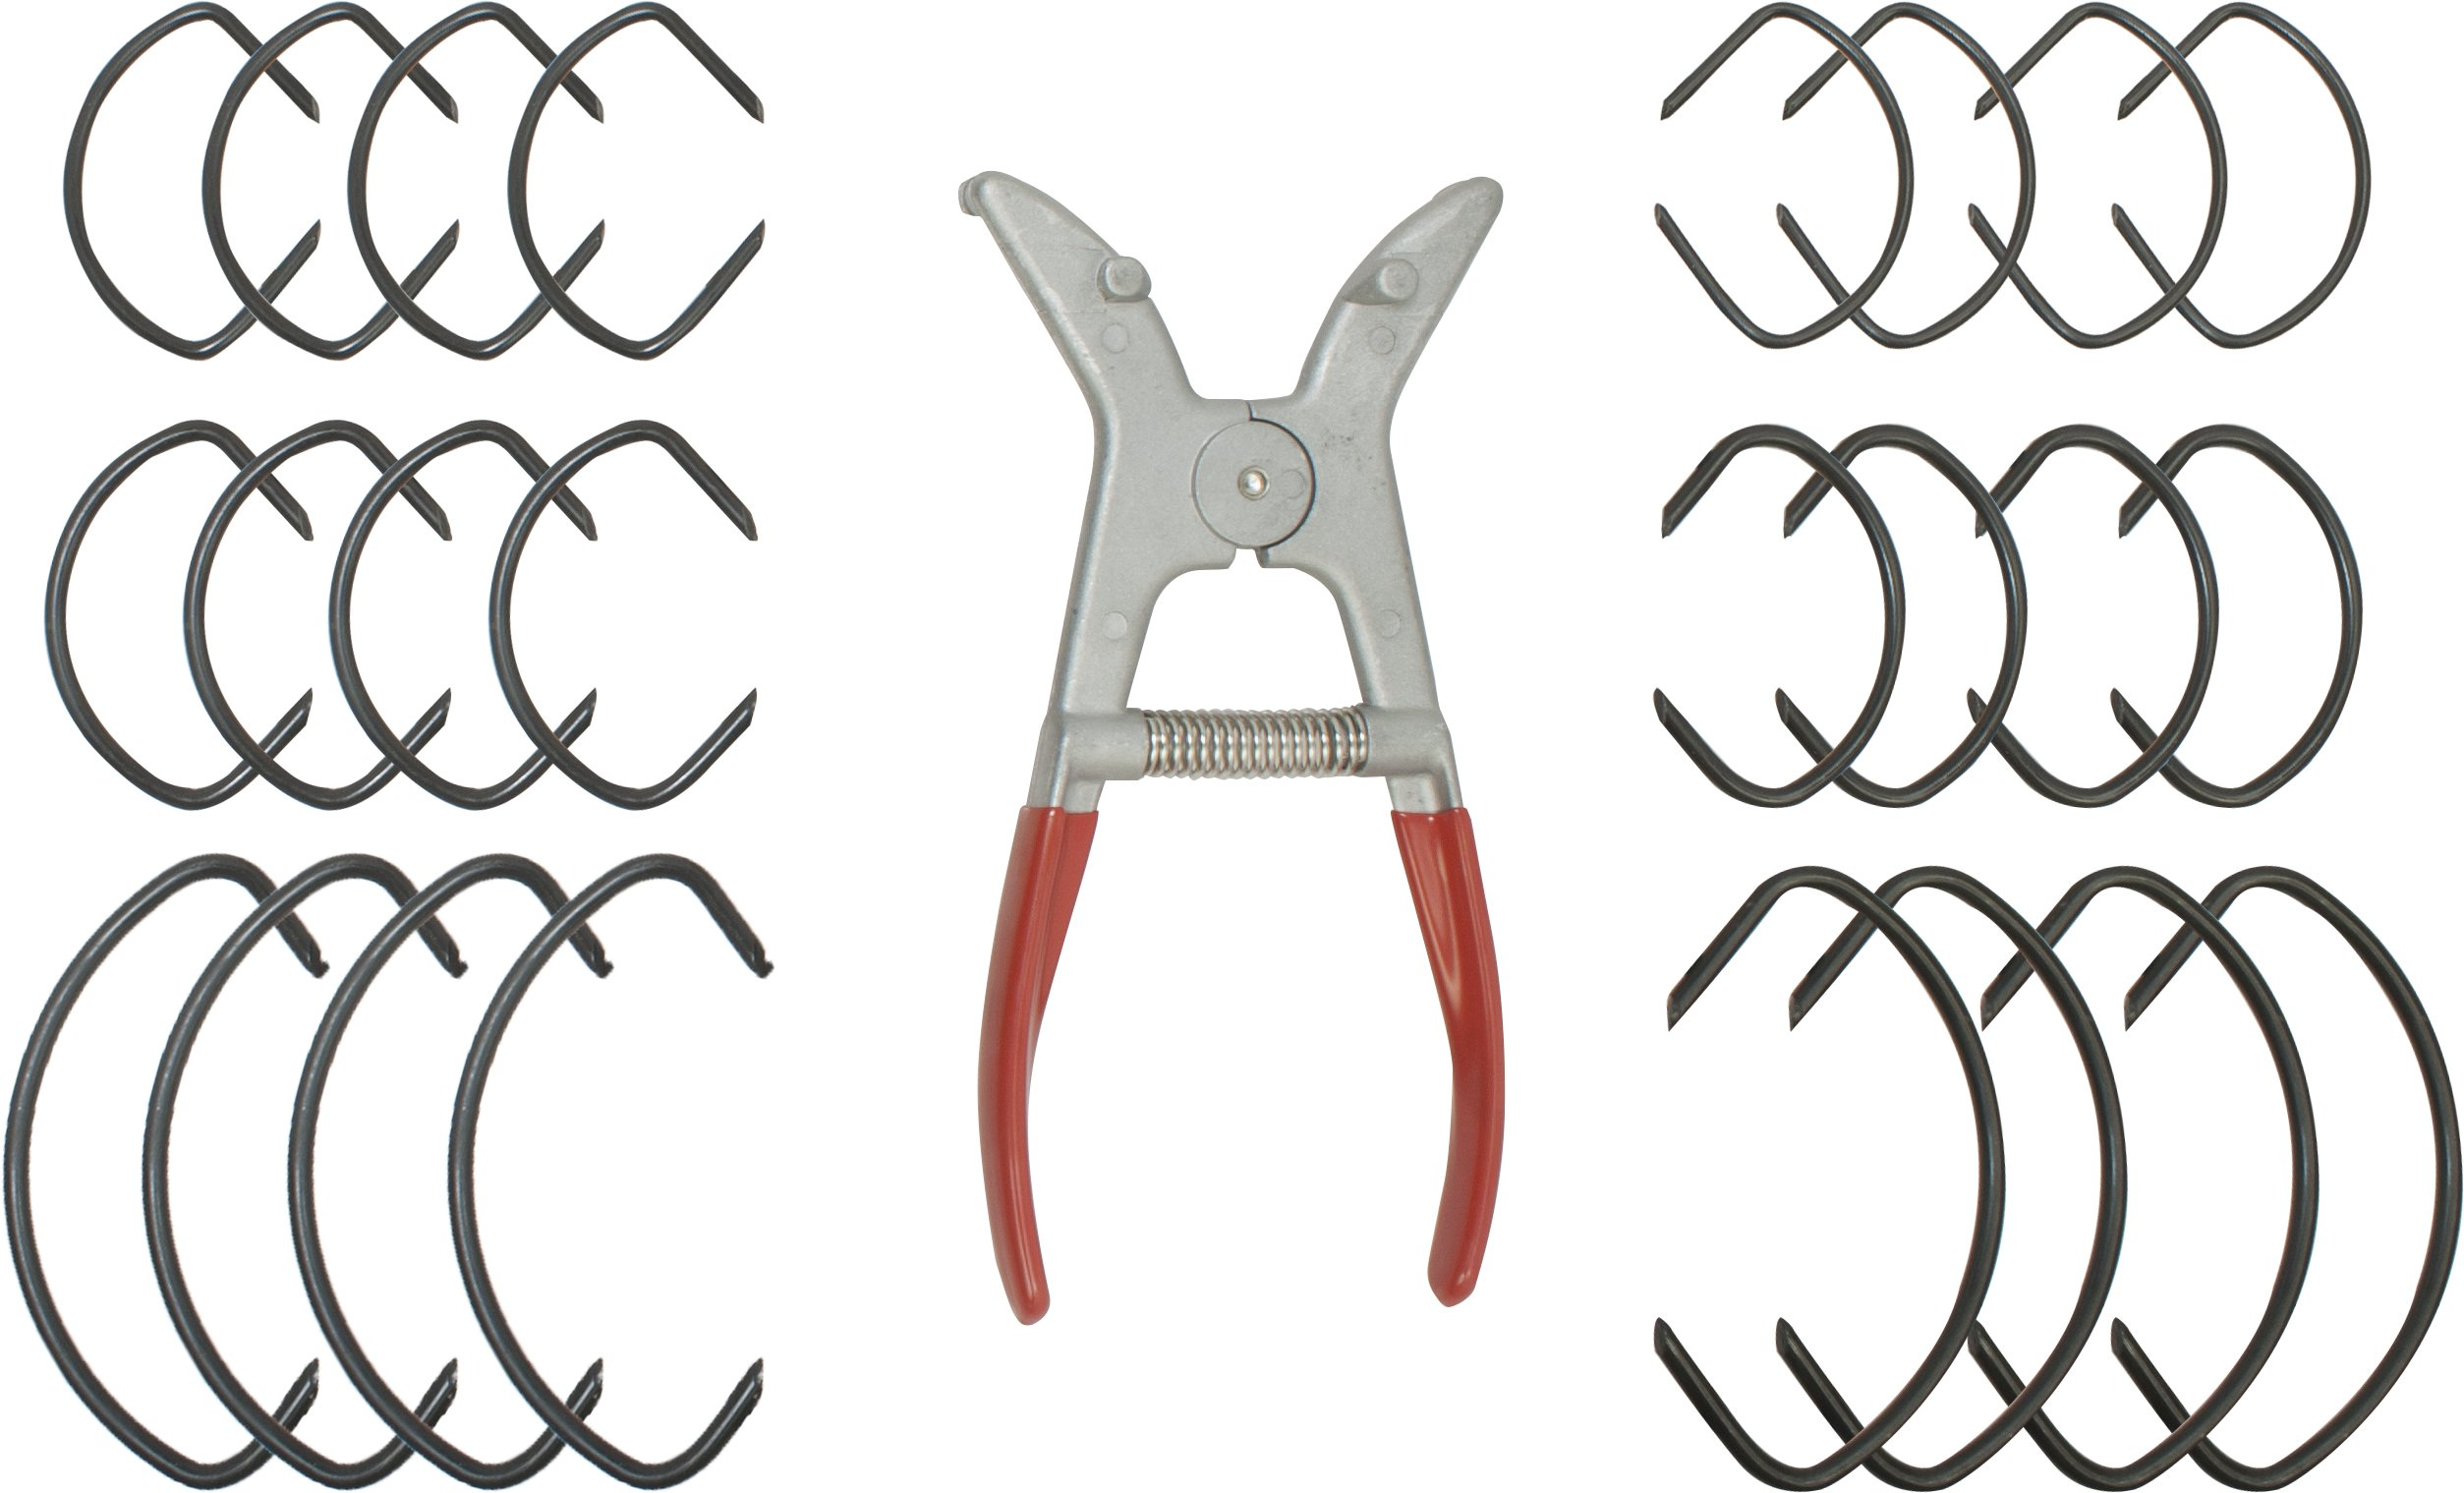 Fulton Woodworking Tools 608 Spring Miter Clamp Set By Peachtree Woodworking Pw608 by Peachtree Woodworking Supply